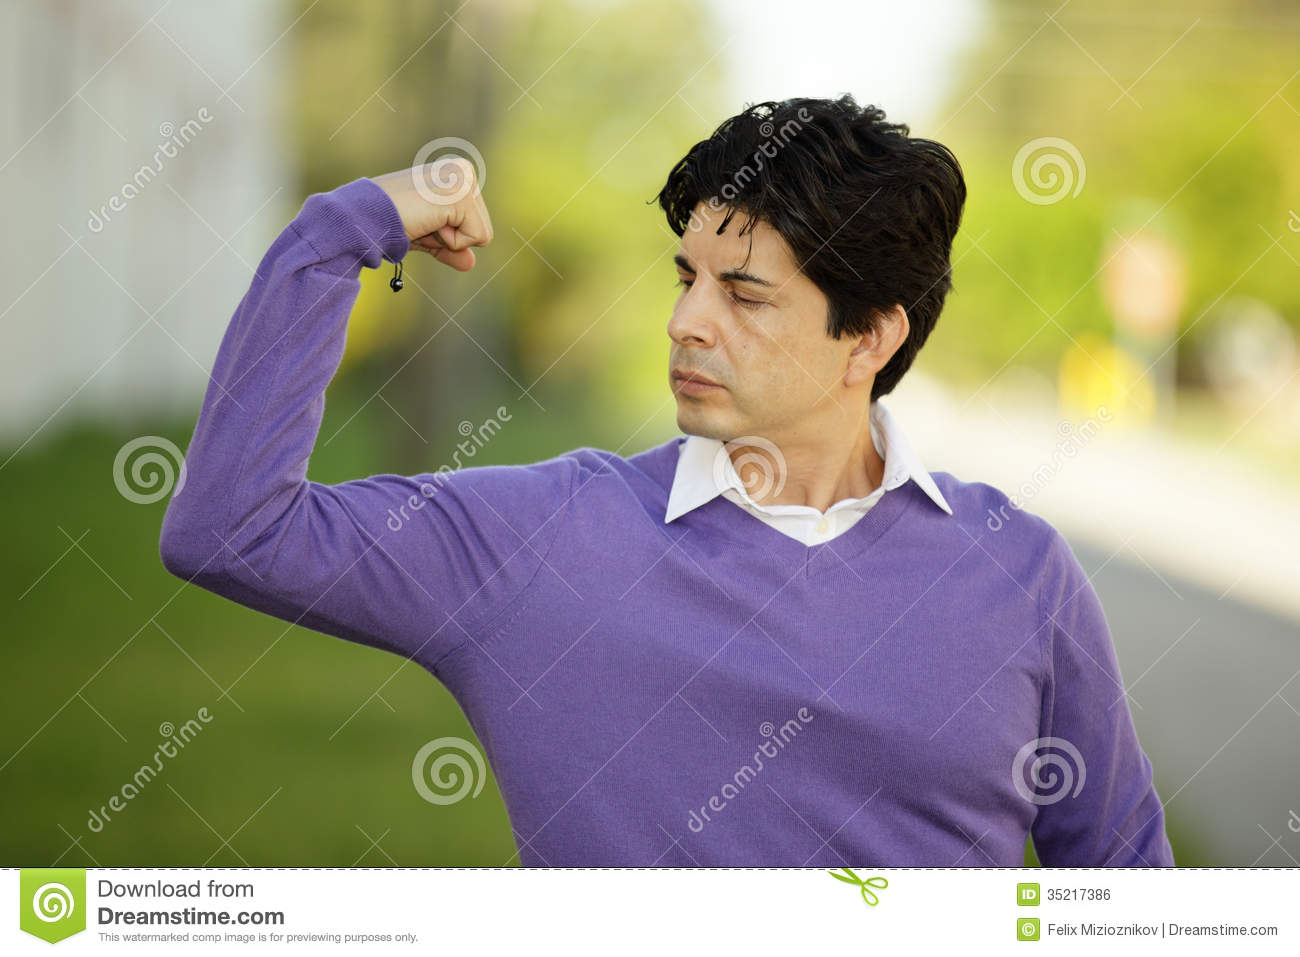 Weak Man Flexing His Muscles Royalty Free Stock Image   Image